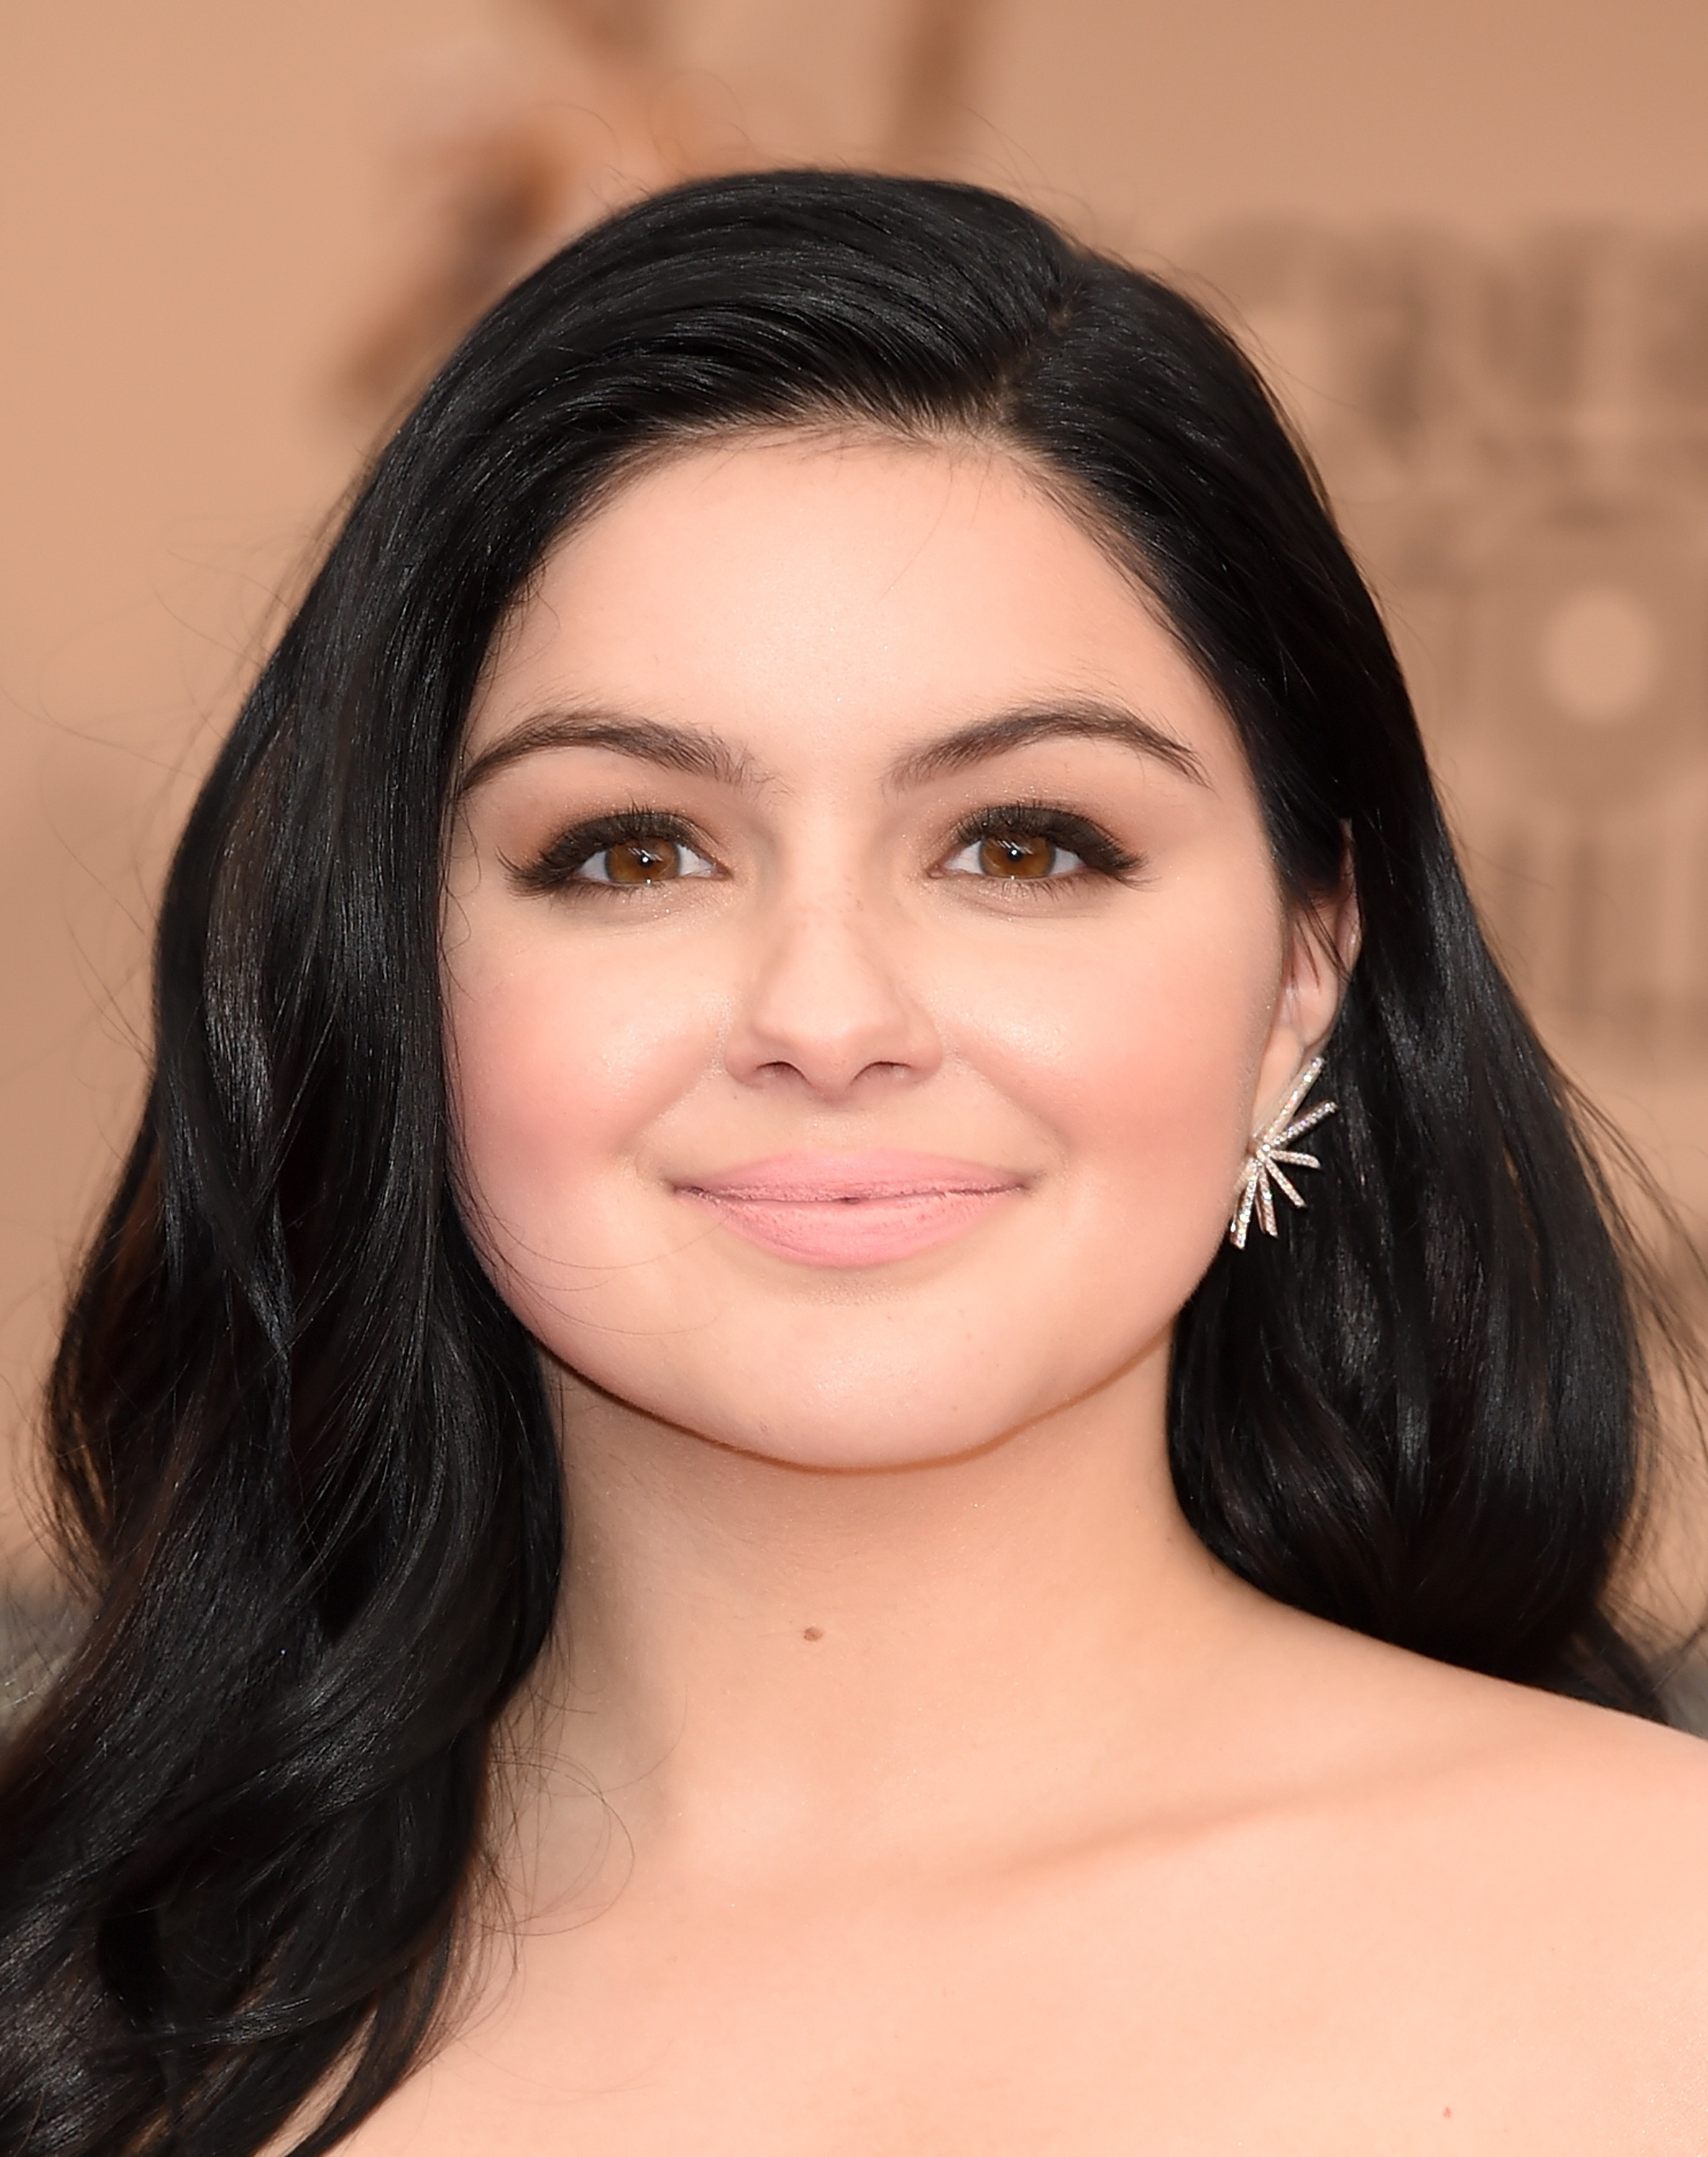 478a516f2d Ariel Winter At The 2016 SAG Awards Looks Like An Old Hollywood ...